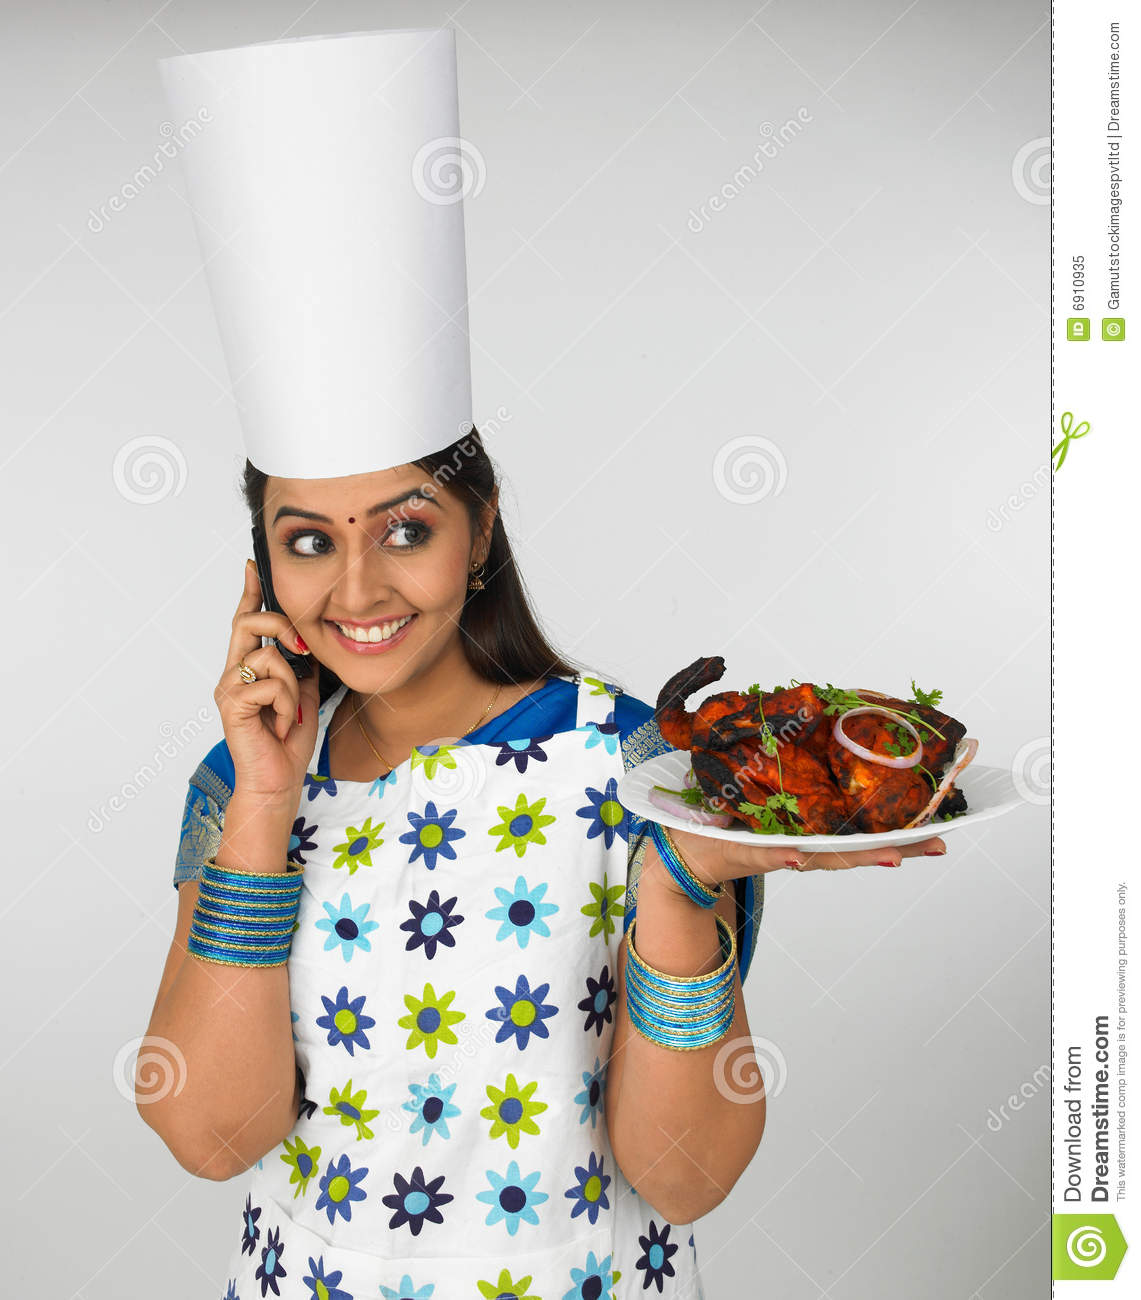 Indian lady chef clipart svg free library Indian lady chef clipart - ClipartFest svg free library